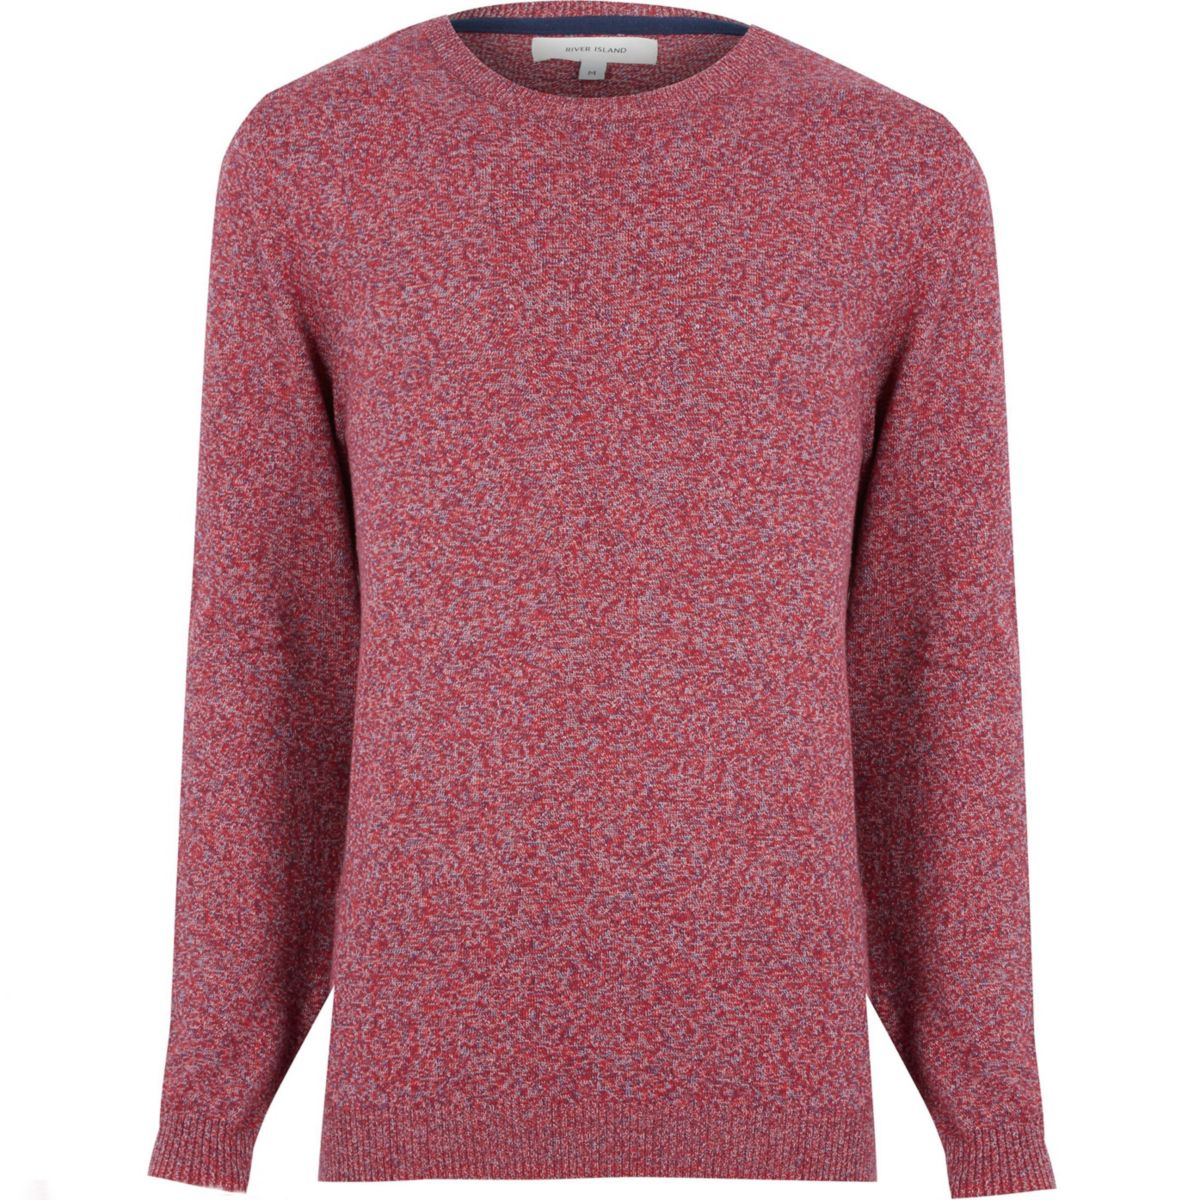 Red marl melange sweater